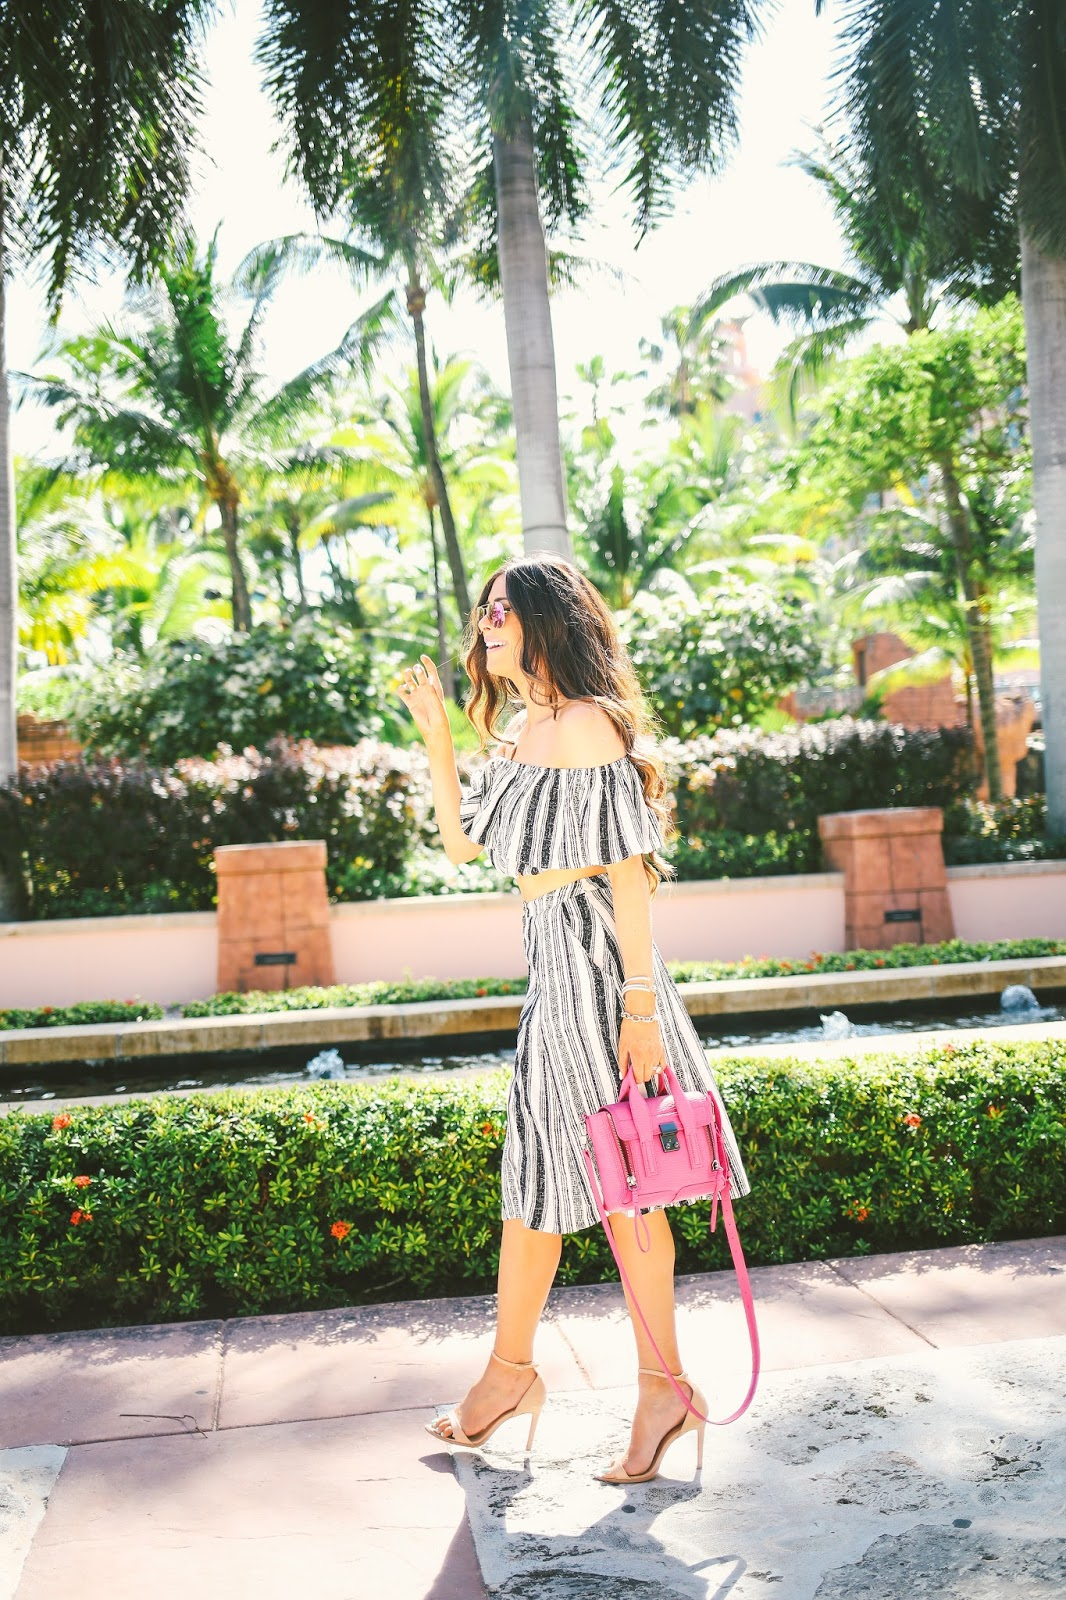 pink ray ban aviators, fuchsia ray ban aviators, ASTR two piece set, striped skirt and crop top outfit, pink phillip lim mini, fushica phillip lim mini, atlantis bahamas